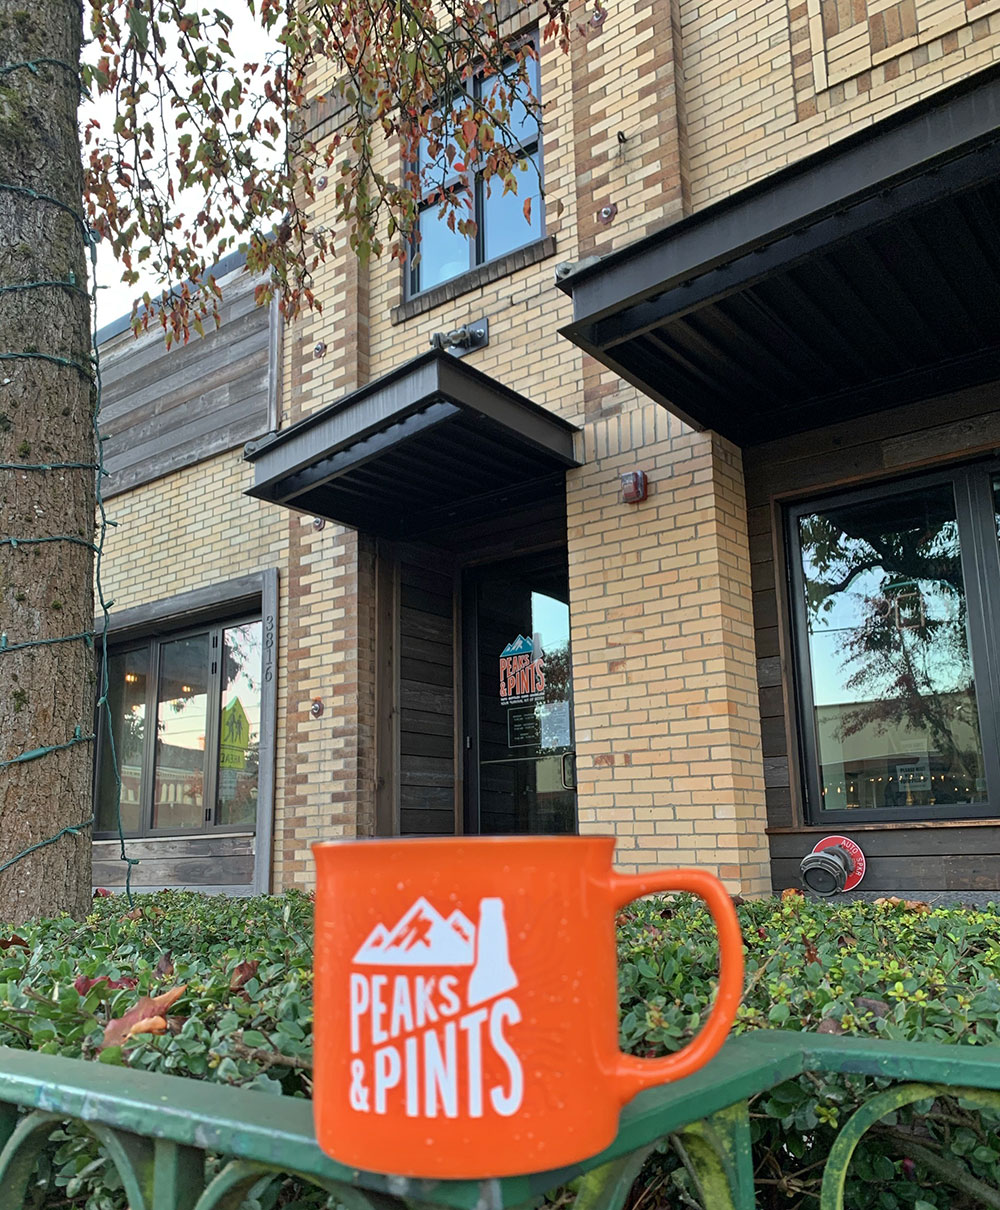 Morning-Foam-Peaks-and-Pints-4th-Anniversary-and-Everybodys-Pop-Up-Park-pulls